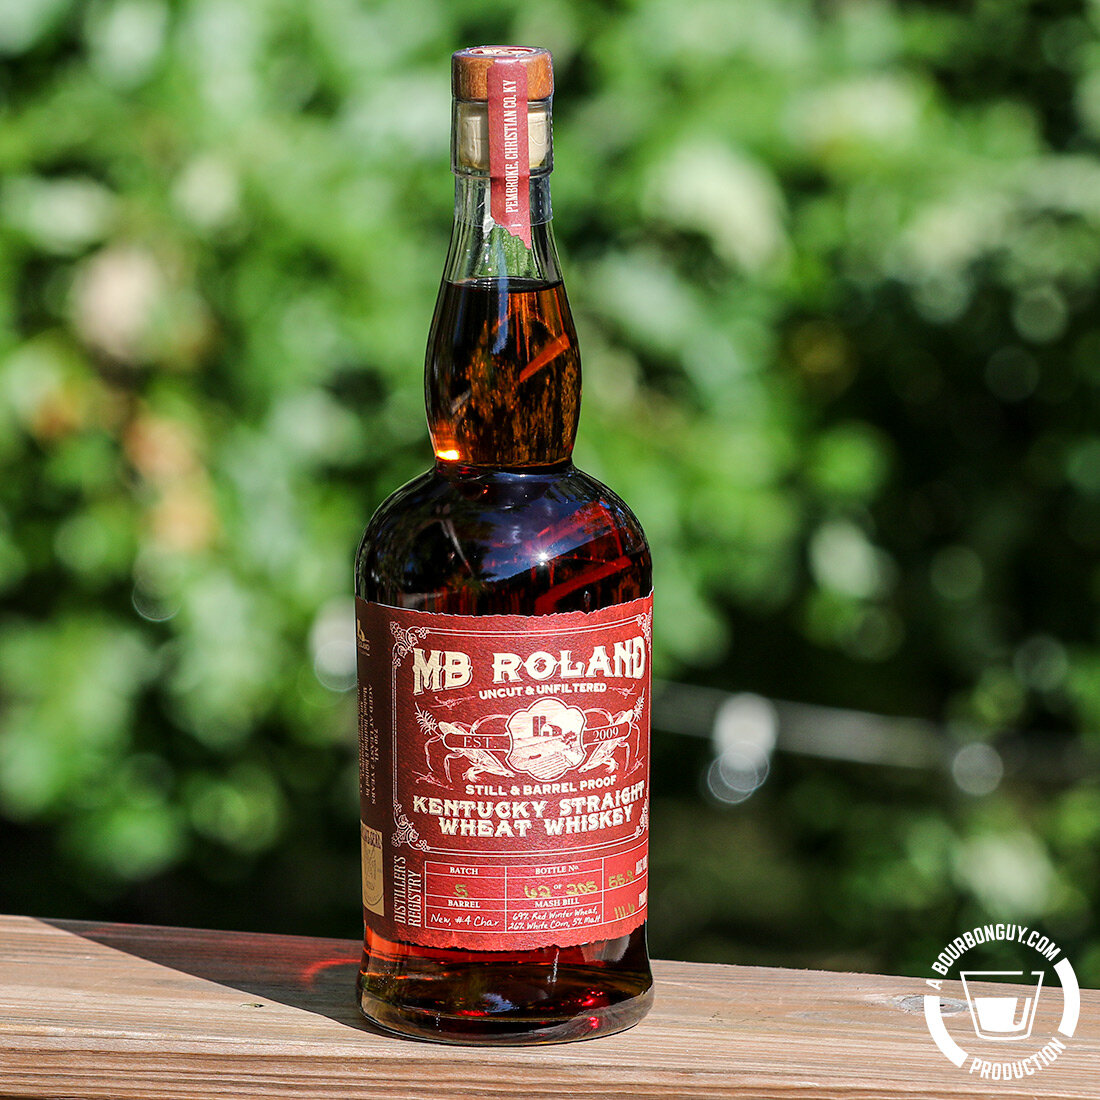 IMAGE: A bottle of MB Roland Wheat whiskey sitting on a railing in the morning sunlight.